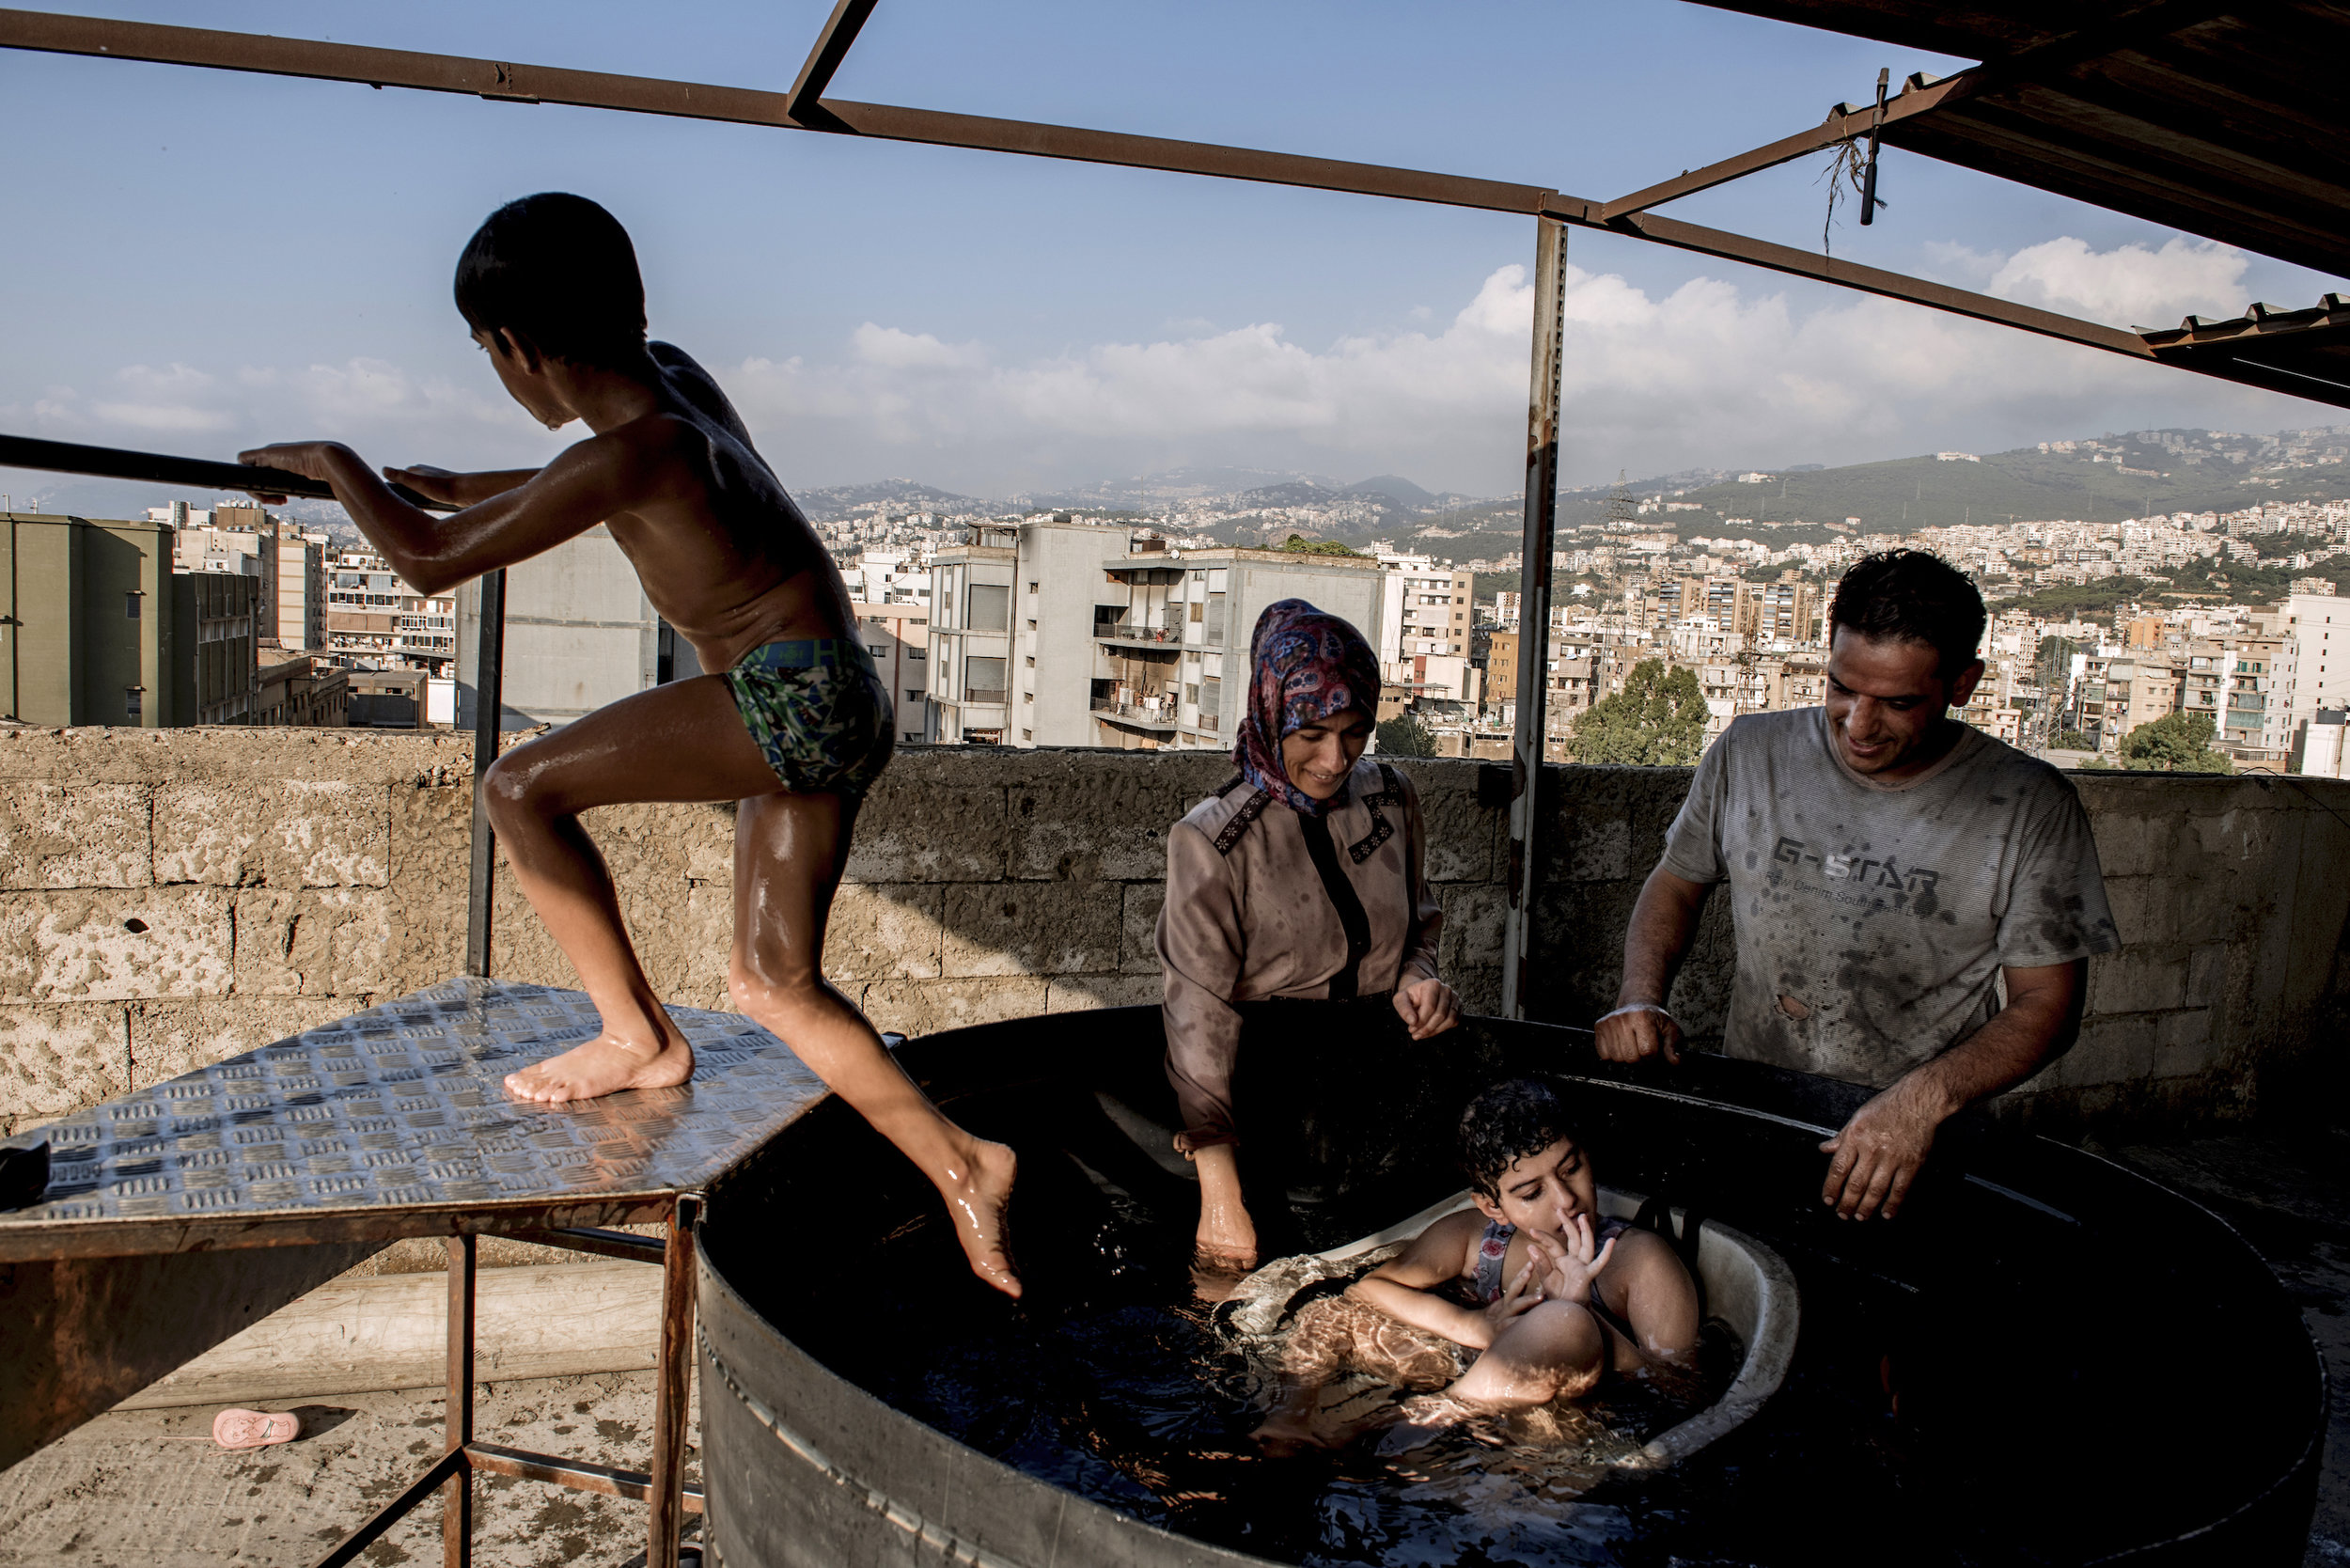 Mohamad  El Saho and Leila  El Saho give bath to their daughter Sendos.Sendos El Saho (12 years old). Sindos is a girl suffering from a severe degree of cerebral palsy and epilepsy and her younger brother Tamim who was also diagnosed with moderate cerebral palsy (lower degree than Sindos).